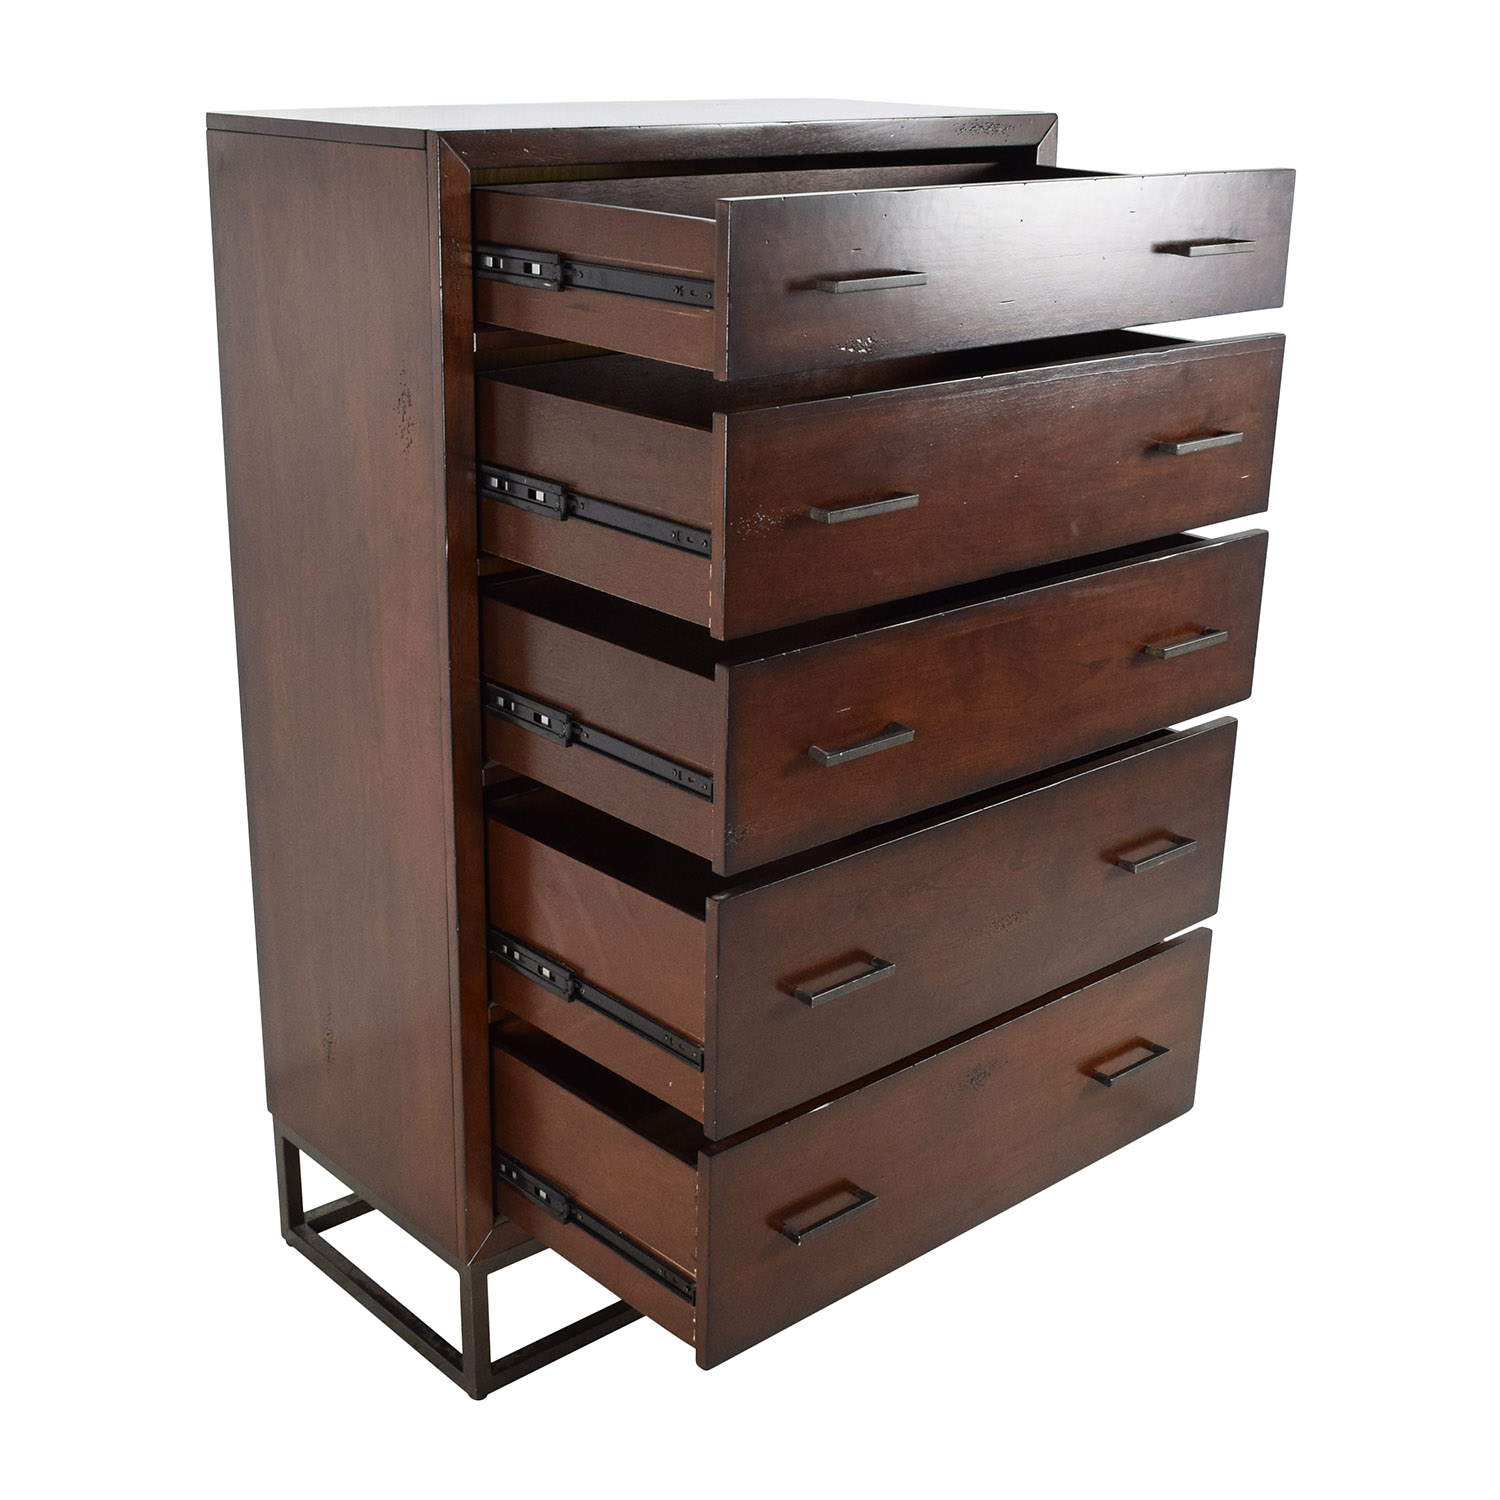 Dressers on sale furniture storage solution for your home for Bed and dresser for sale